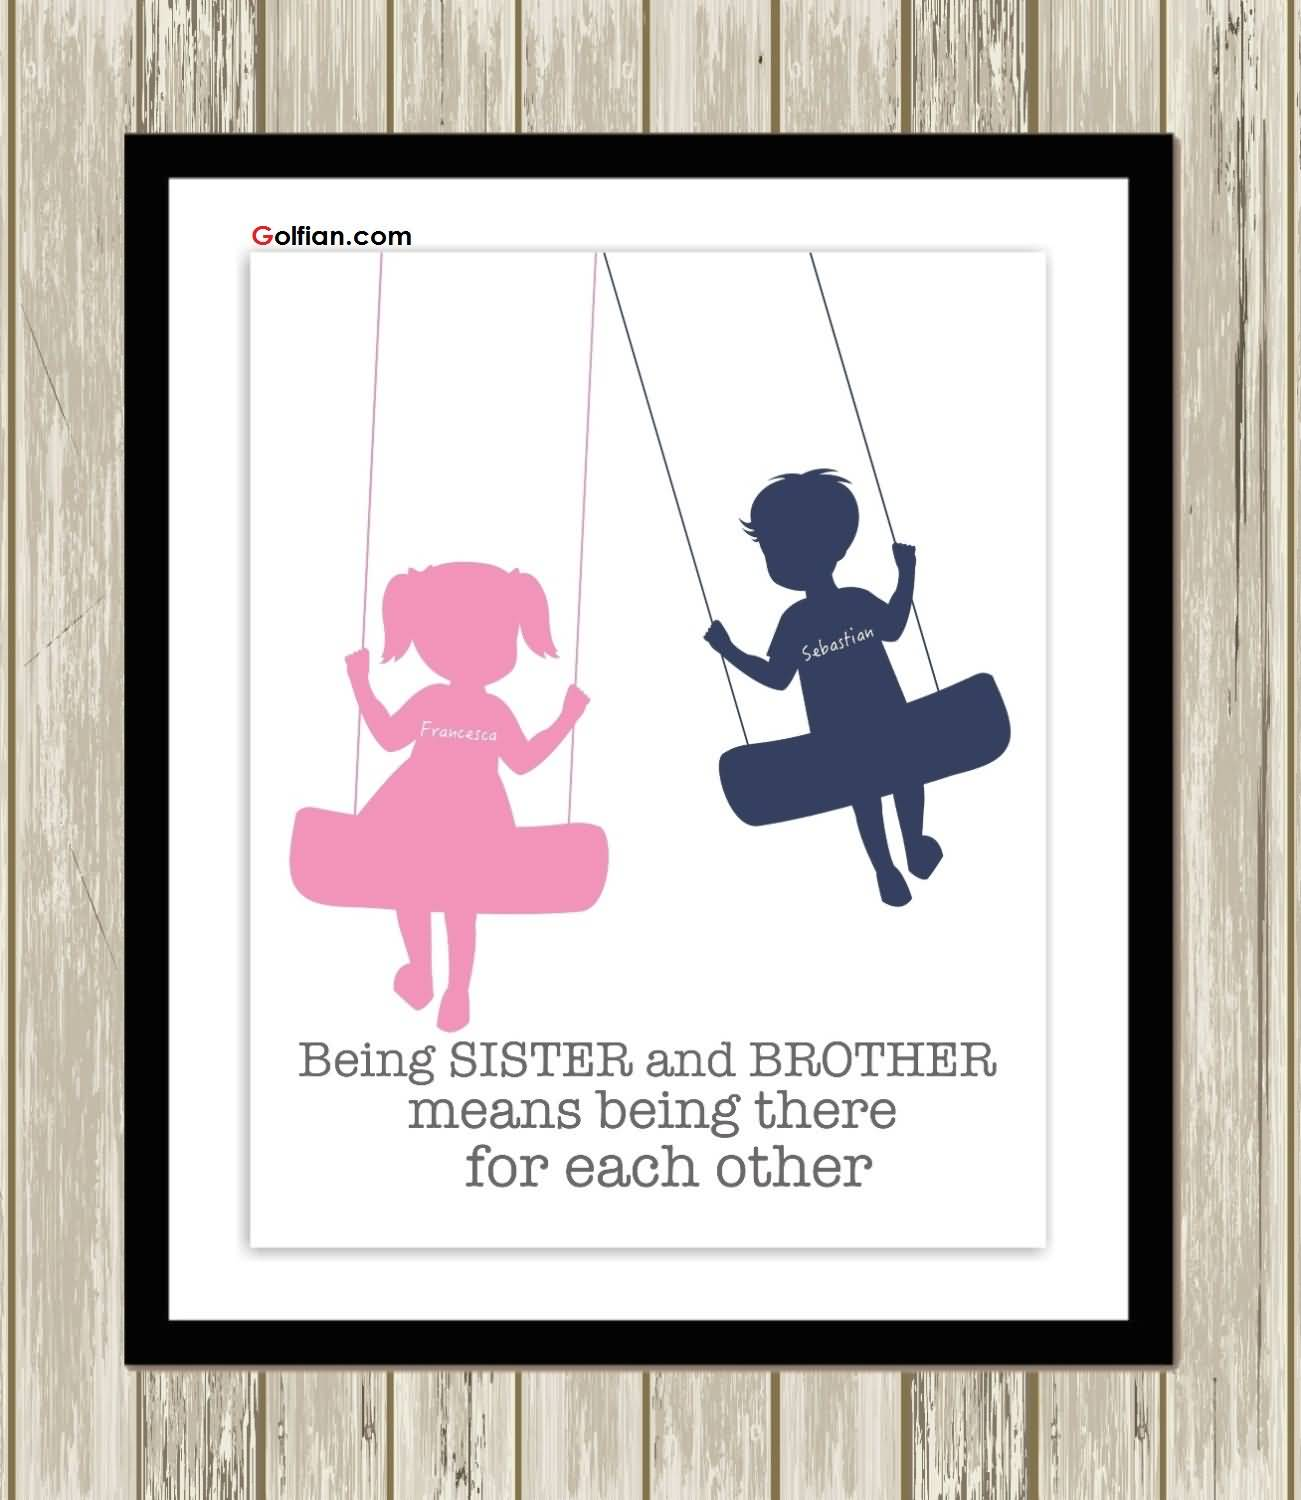 The Best Brother Quotes And Sibling Sayings Art Of Gifting